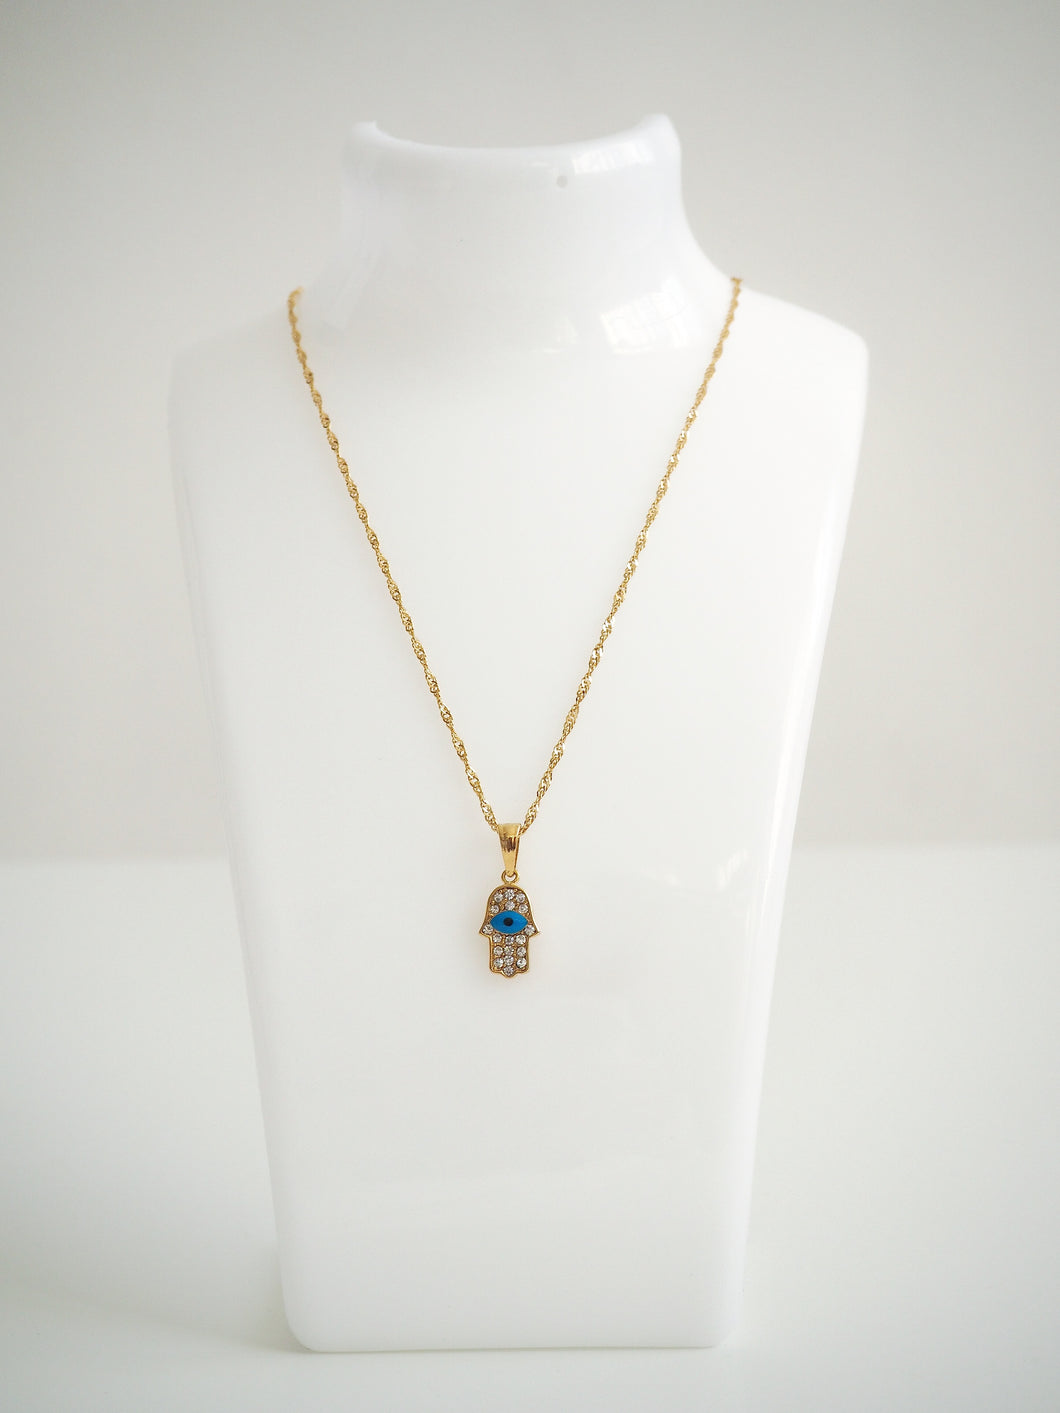 GOLD HAMSA EYE NECKLACE